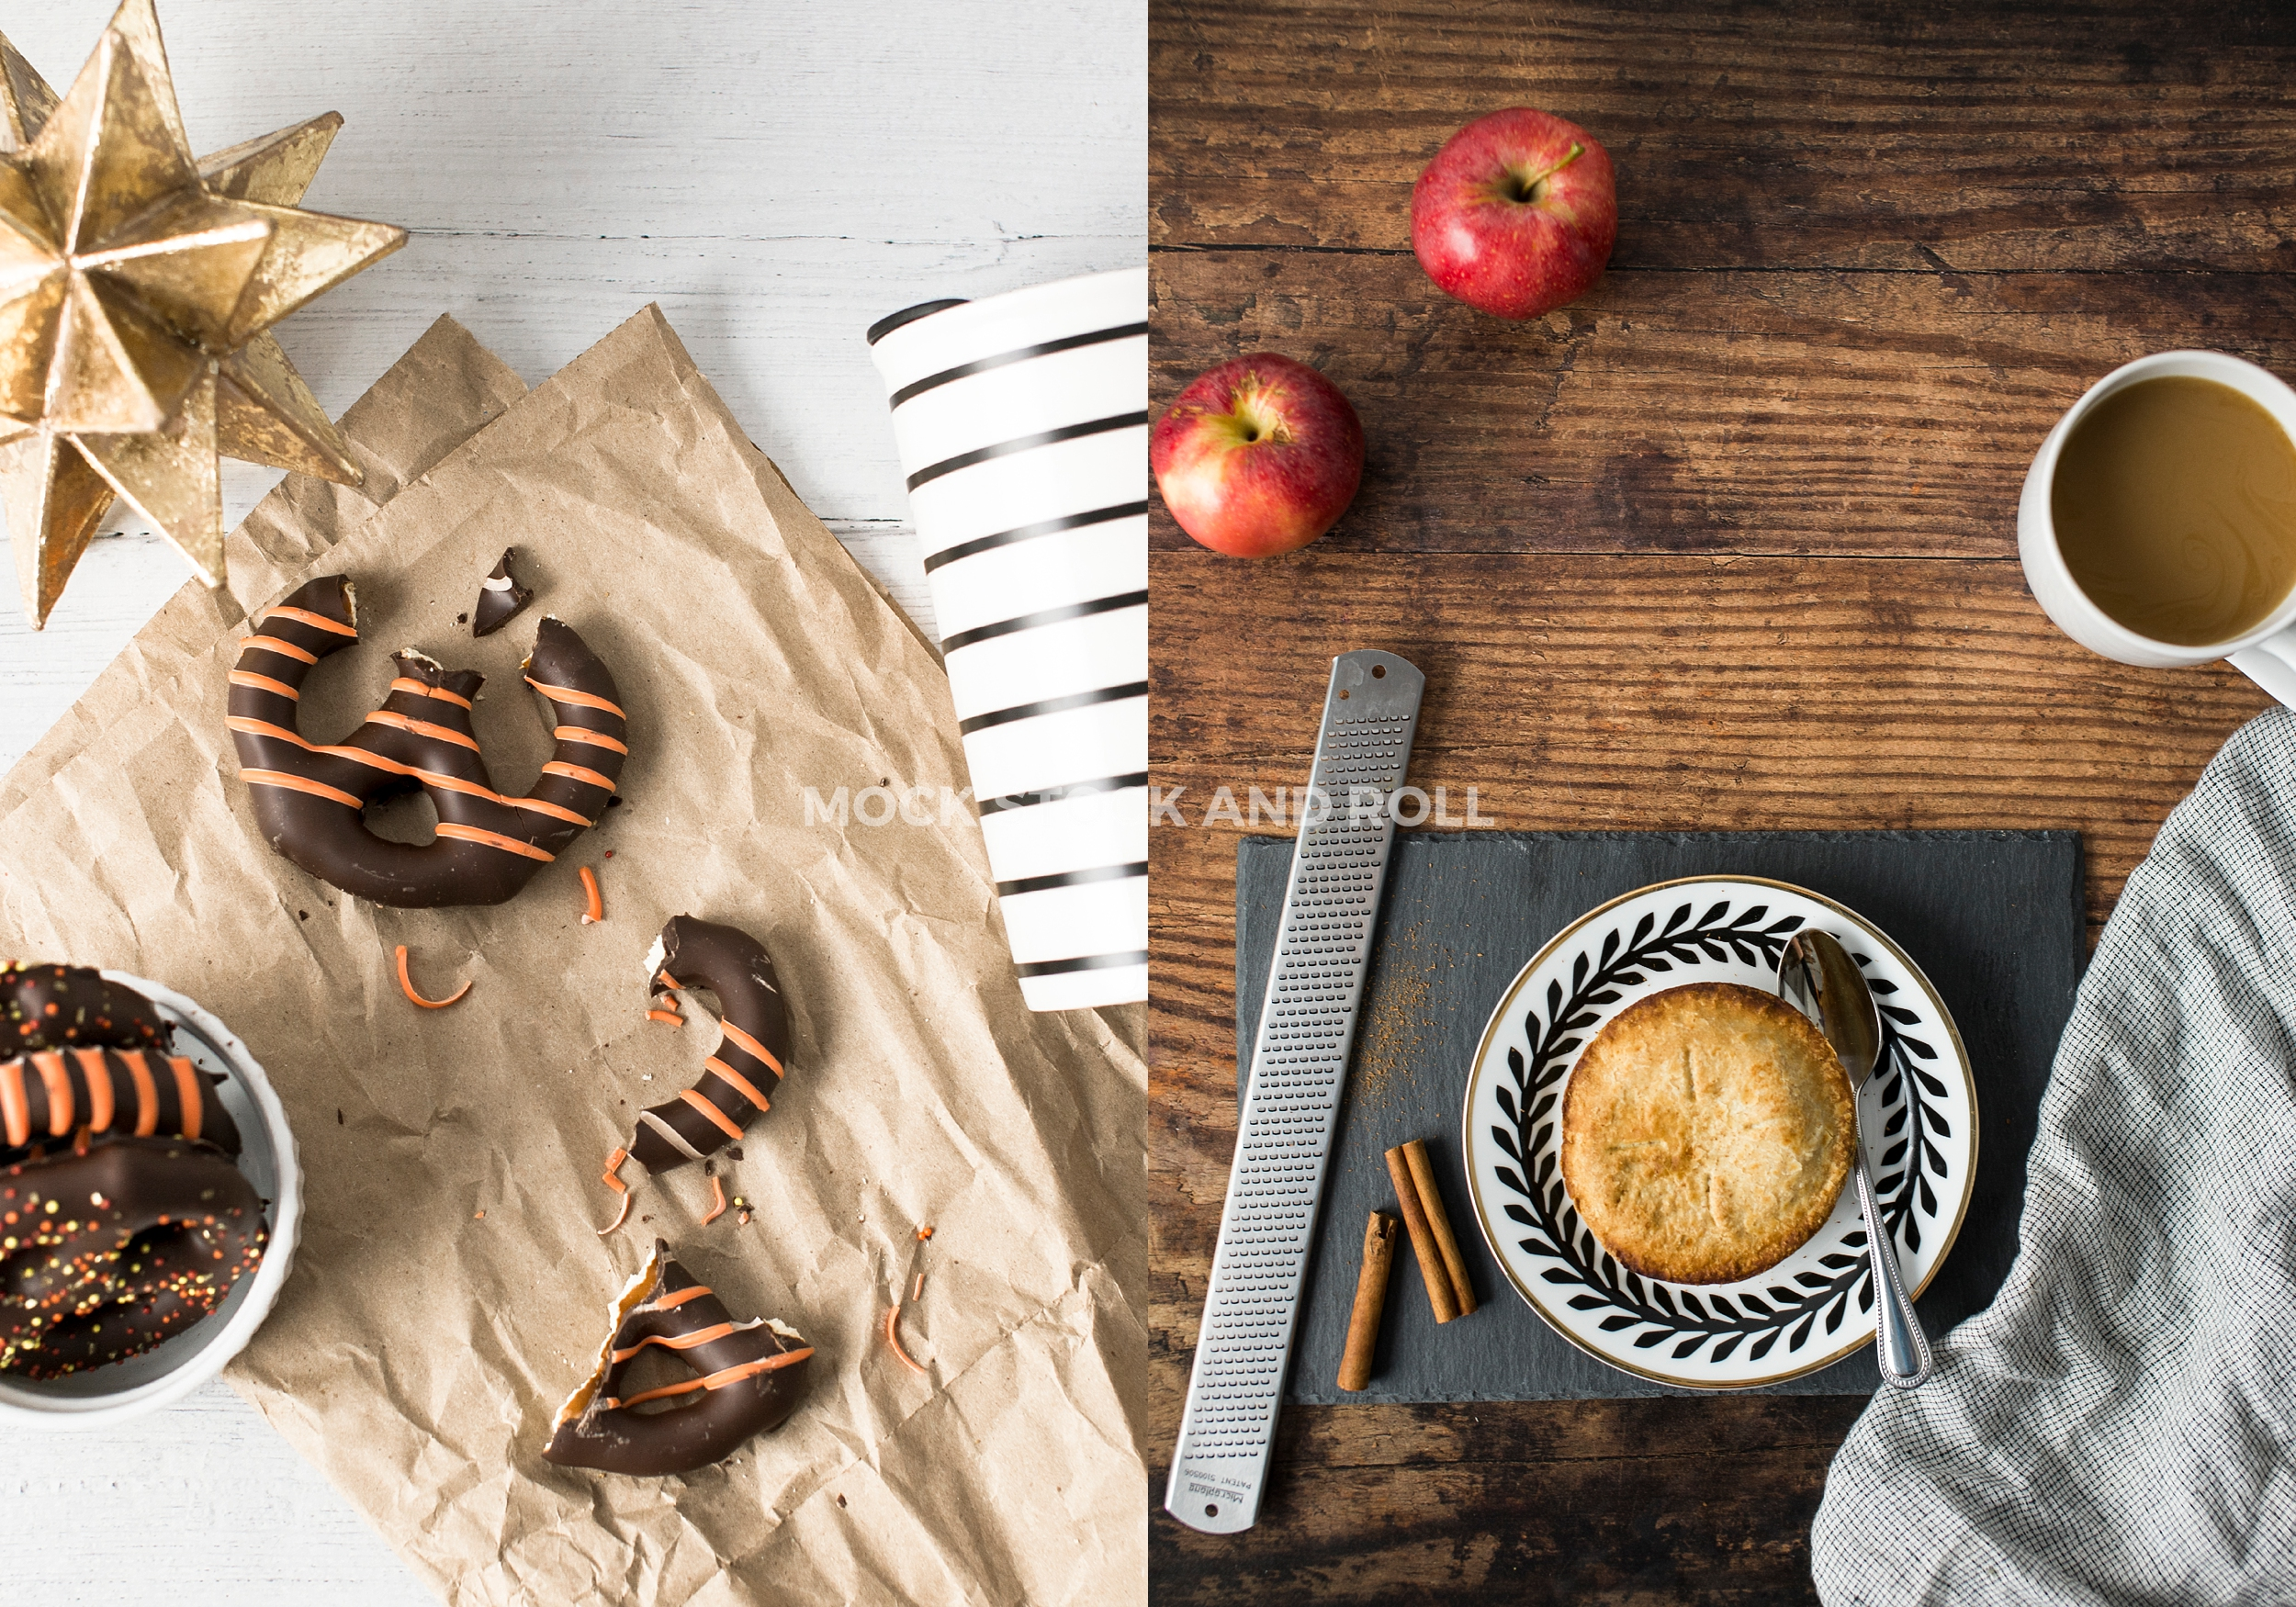 Yummy fall treats in this fall styled stock photo bundle from Mock Stock and Roll Photography